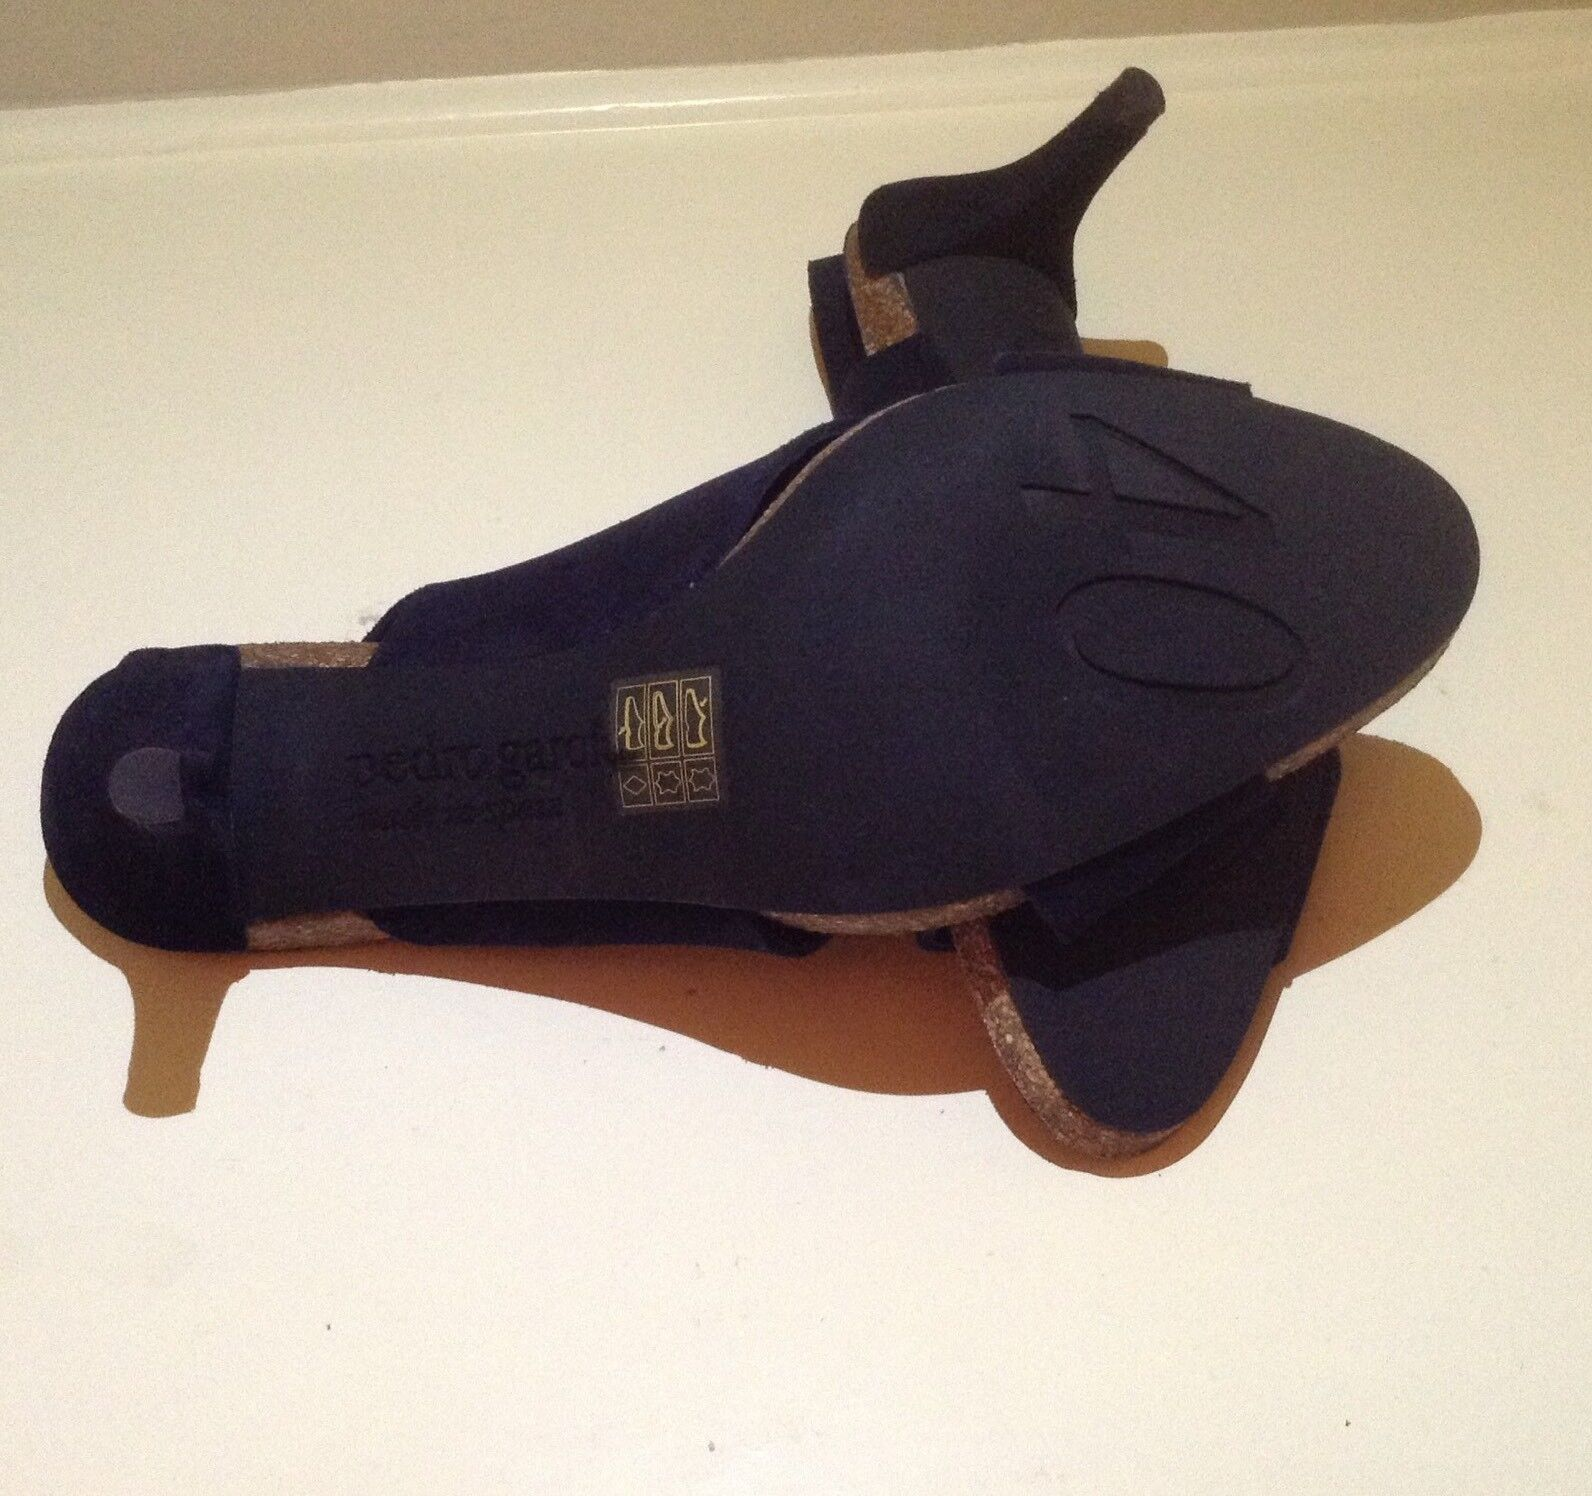 NWOB PEDRO GARCIA NAVY blueE SUEDE SHOES SIZE 40 40 40  MAGGIE  386762